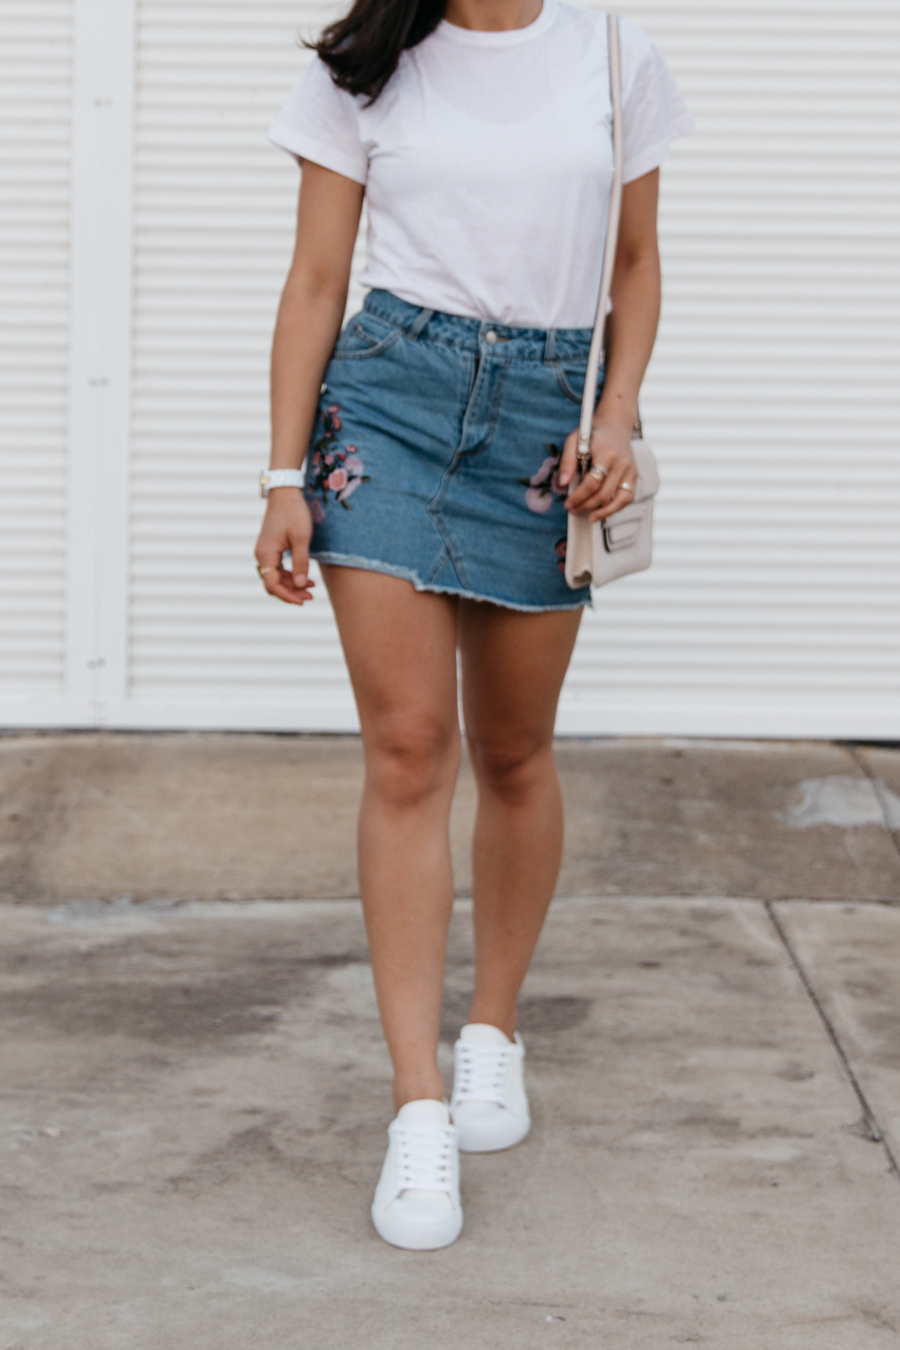 Embroidered denim skirt outfit.